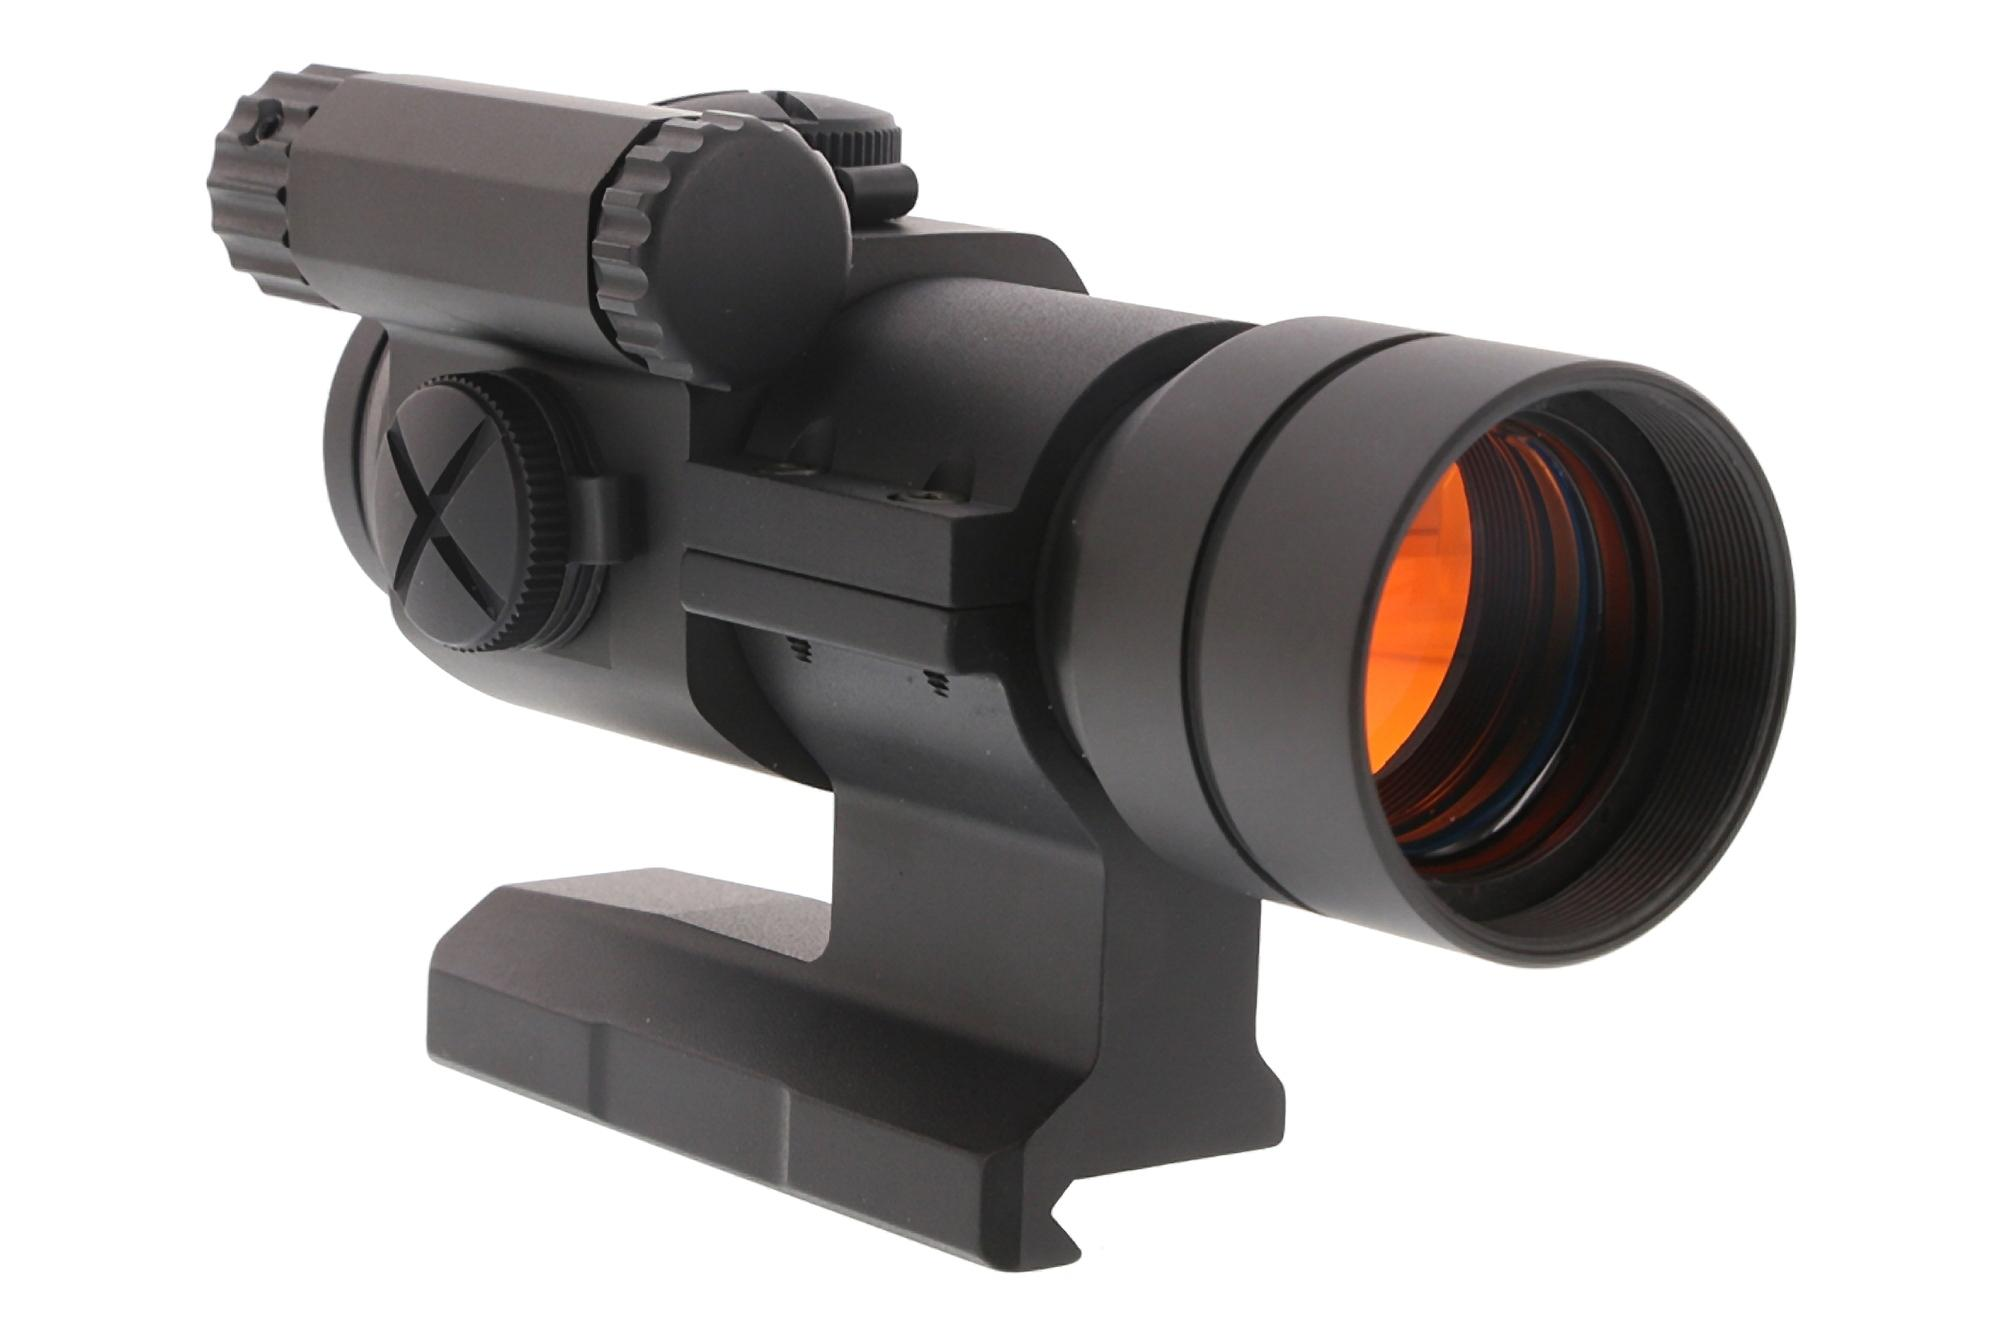 Aimpoint Carbine Optic (ACO) Red Dot Sight - 2 MOA